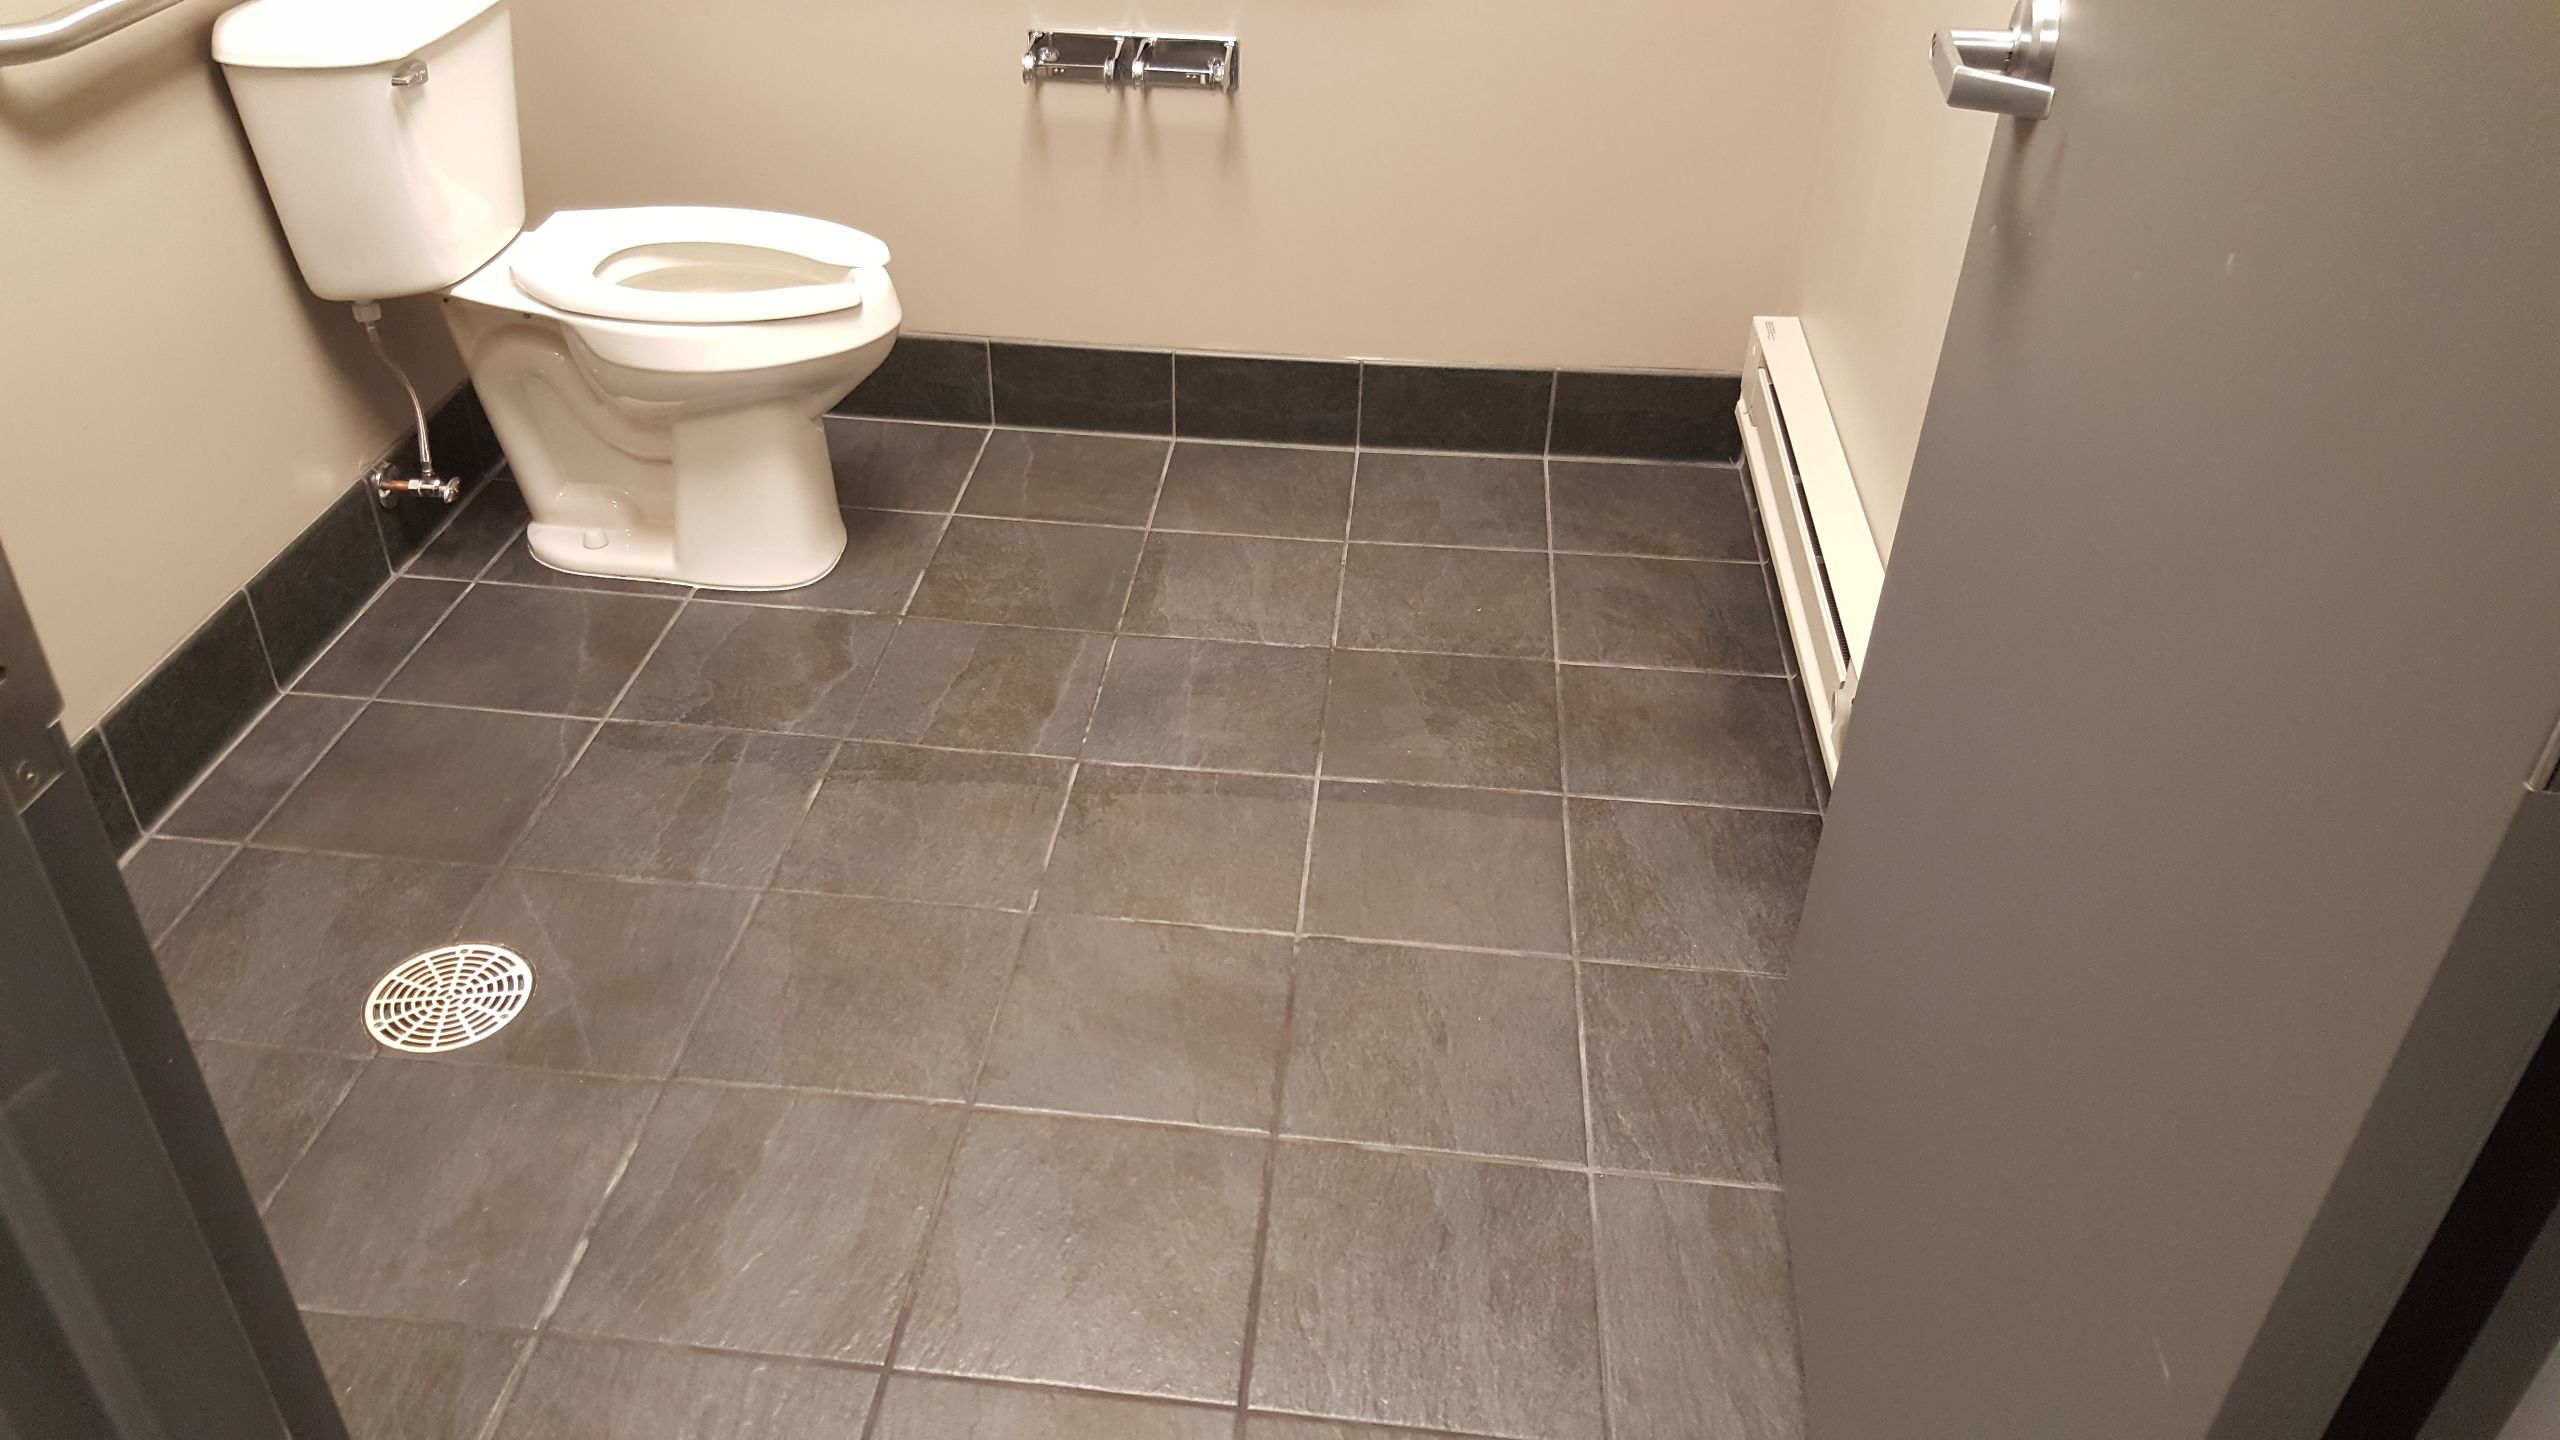 Tile and Grout Cleaning in Novi MI